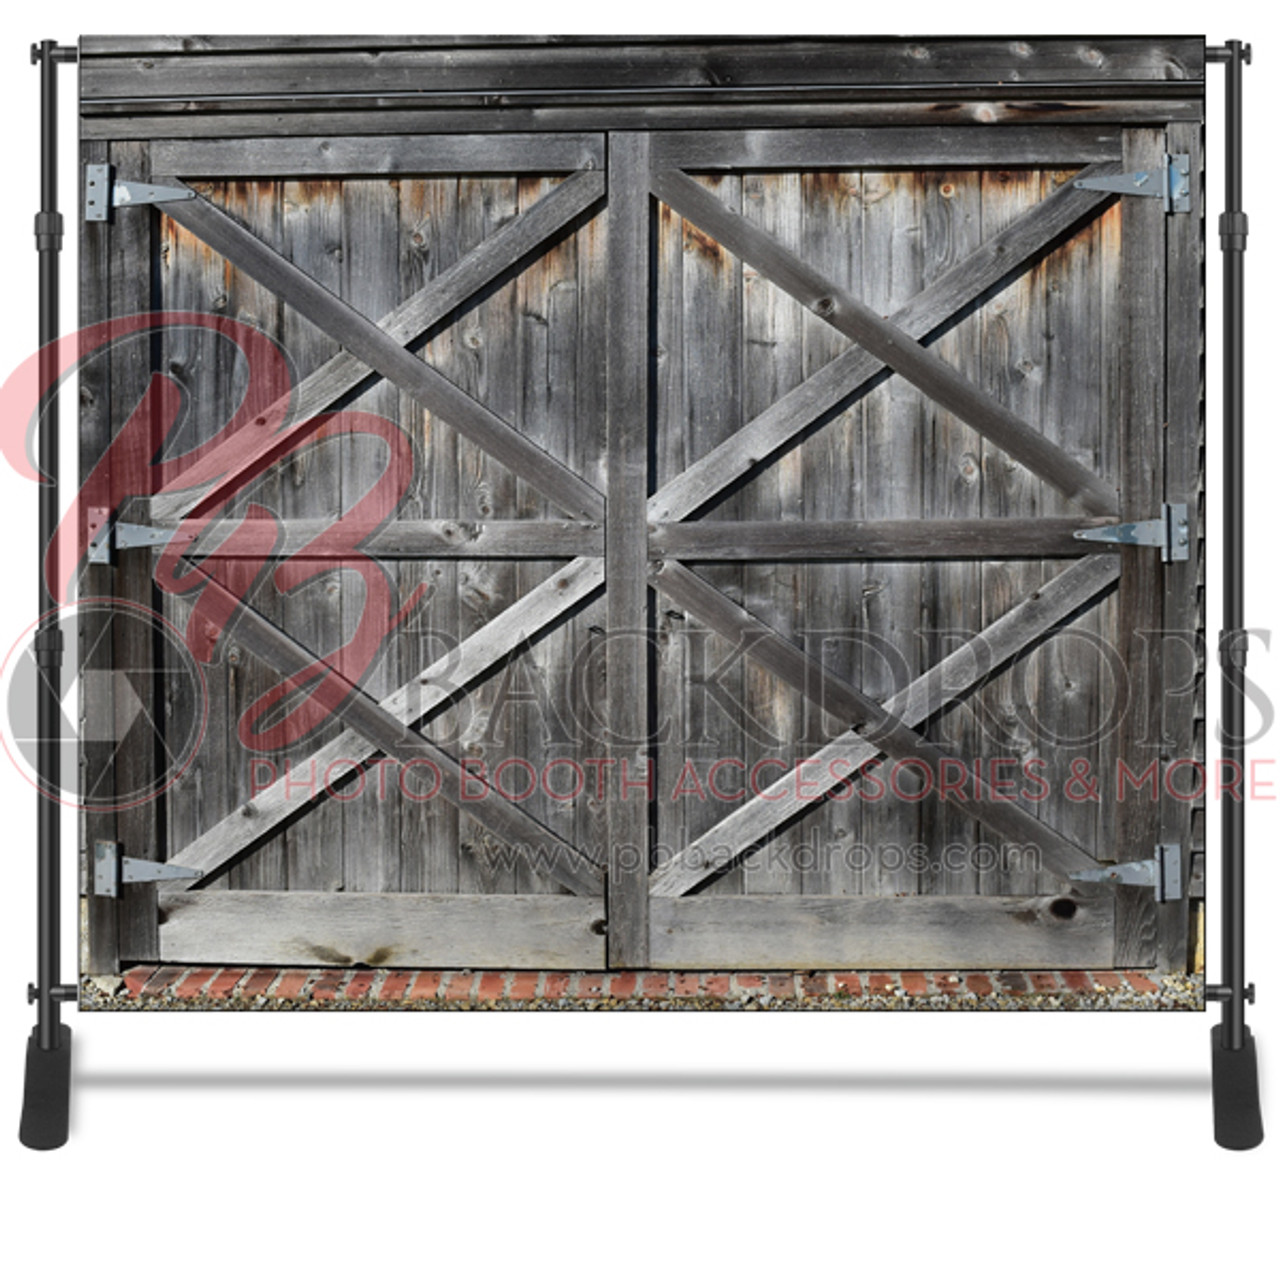 8x8 Printed Tension Fabric Backdrop Barn Door Pb Backdrops